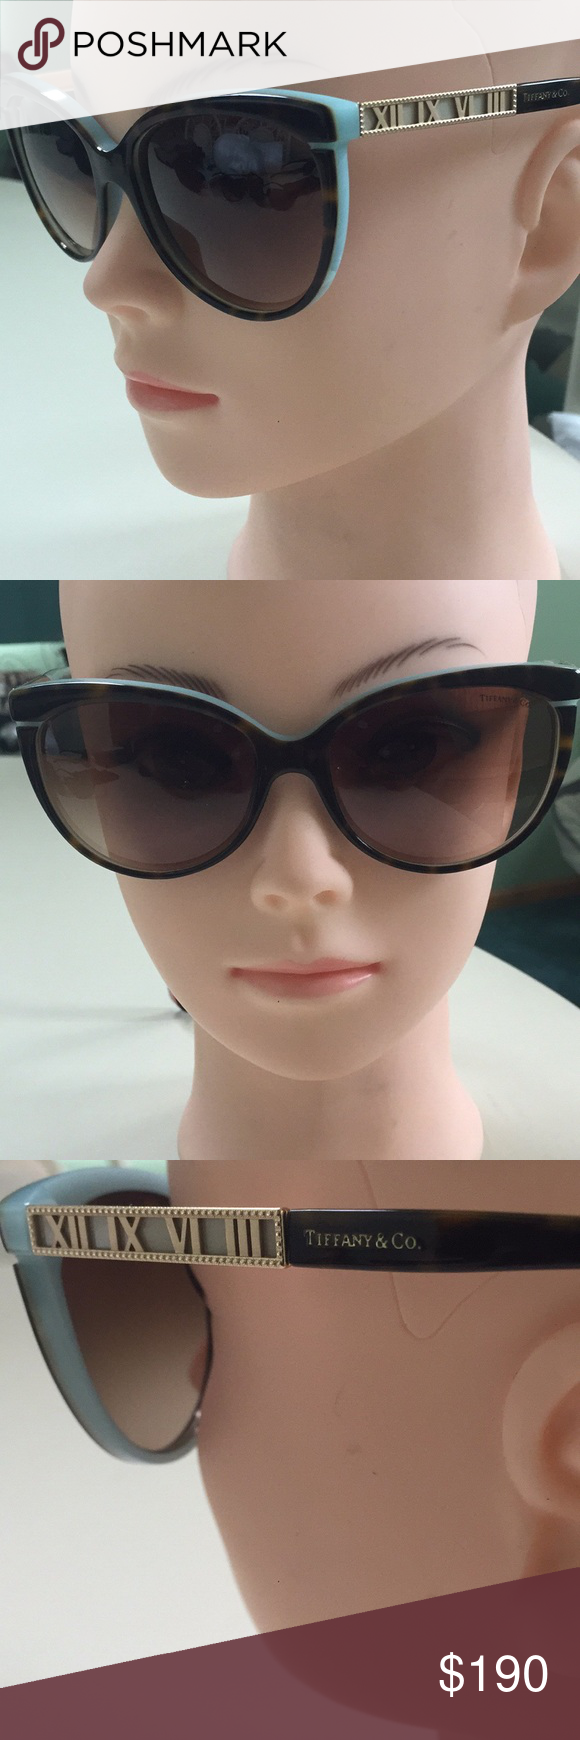 07230d8c731d Tiffany   Co. Sunglasses Great condition Tiffany   Co. Accessories ...